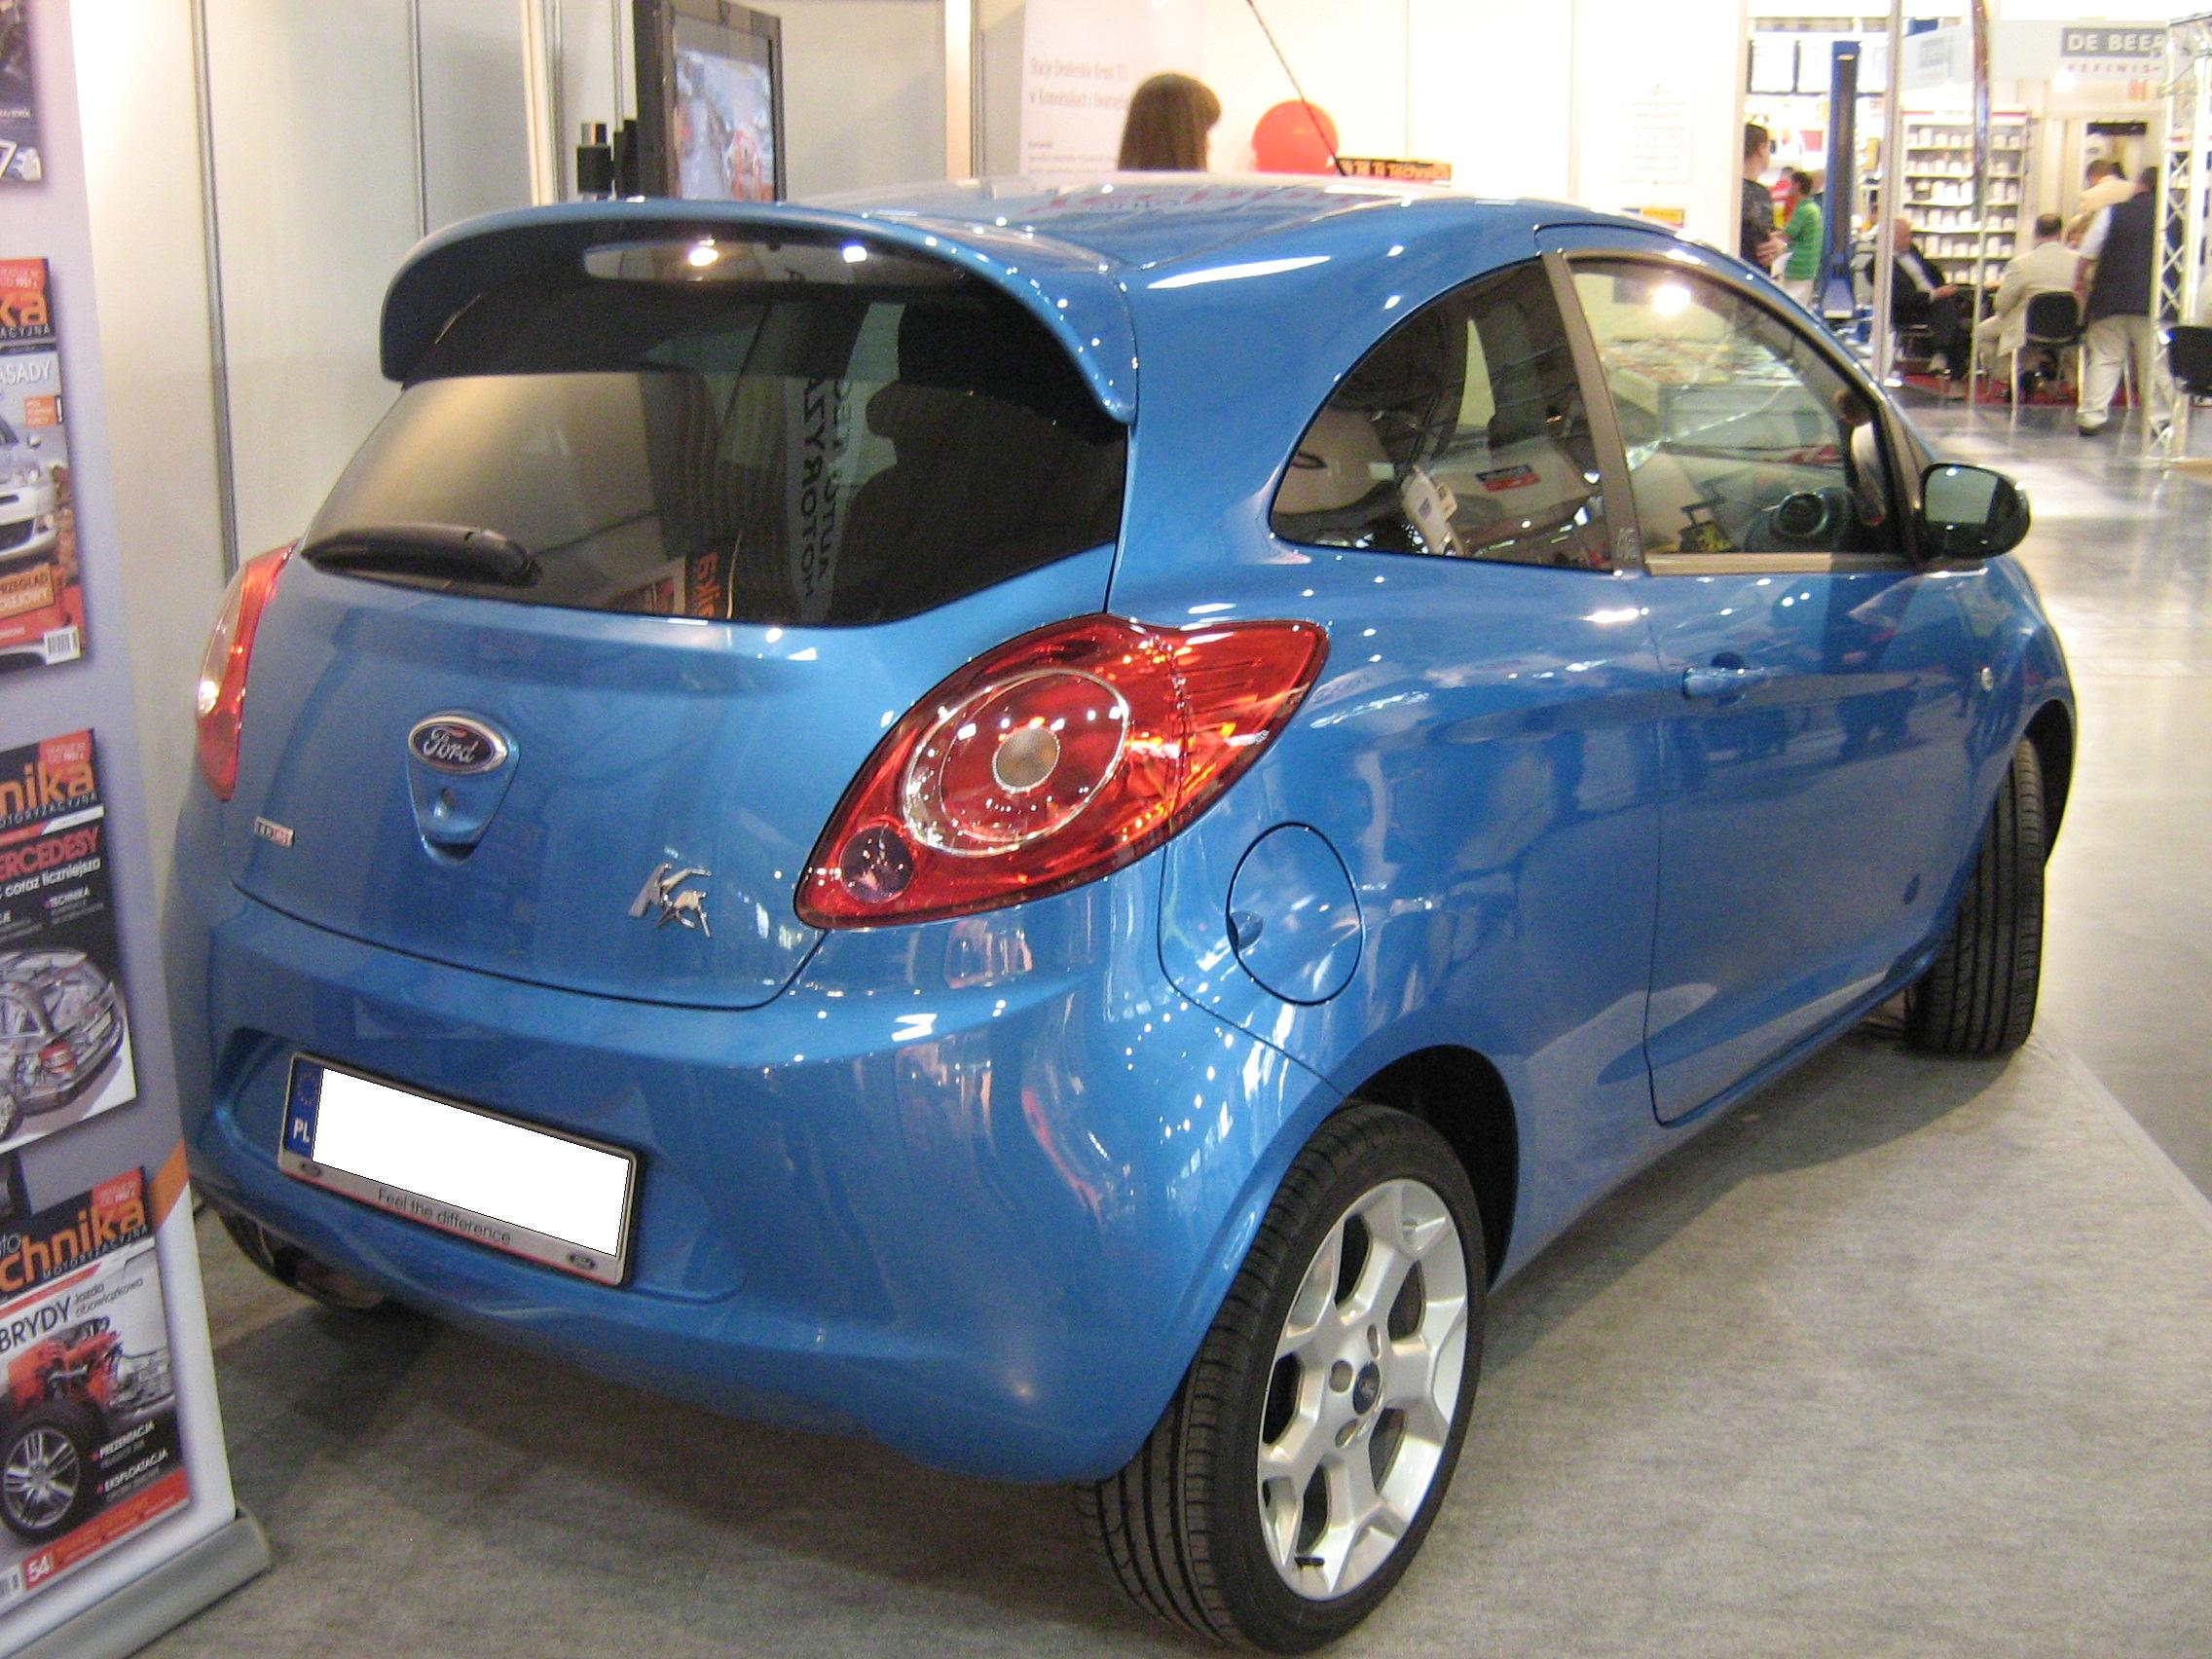 file ford ka ii rear ttm wikimedia commons. Black Bedroom Furniture Sets. Home Design Ideas